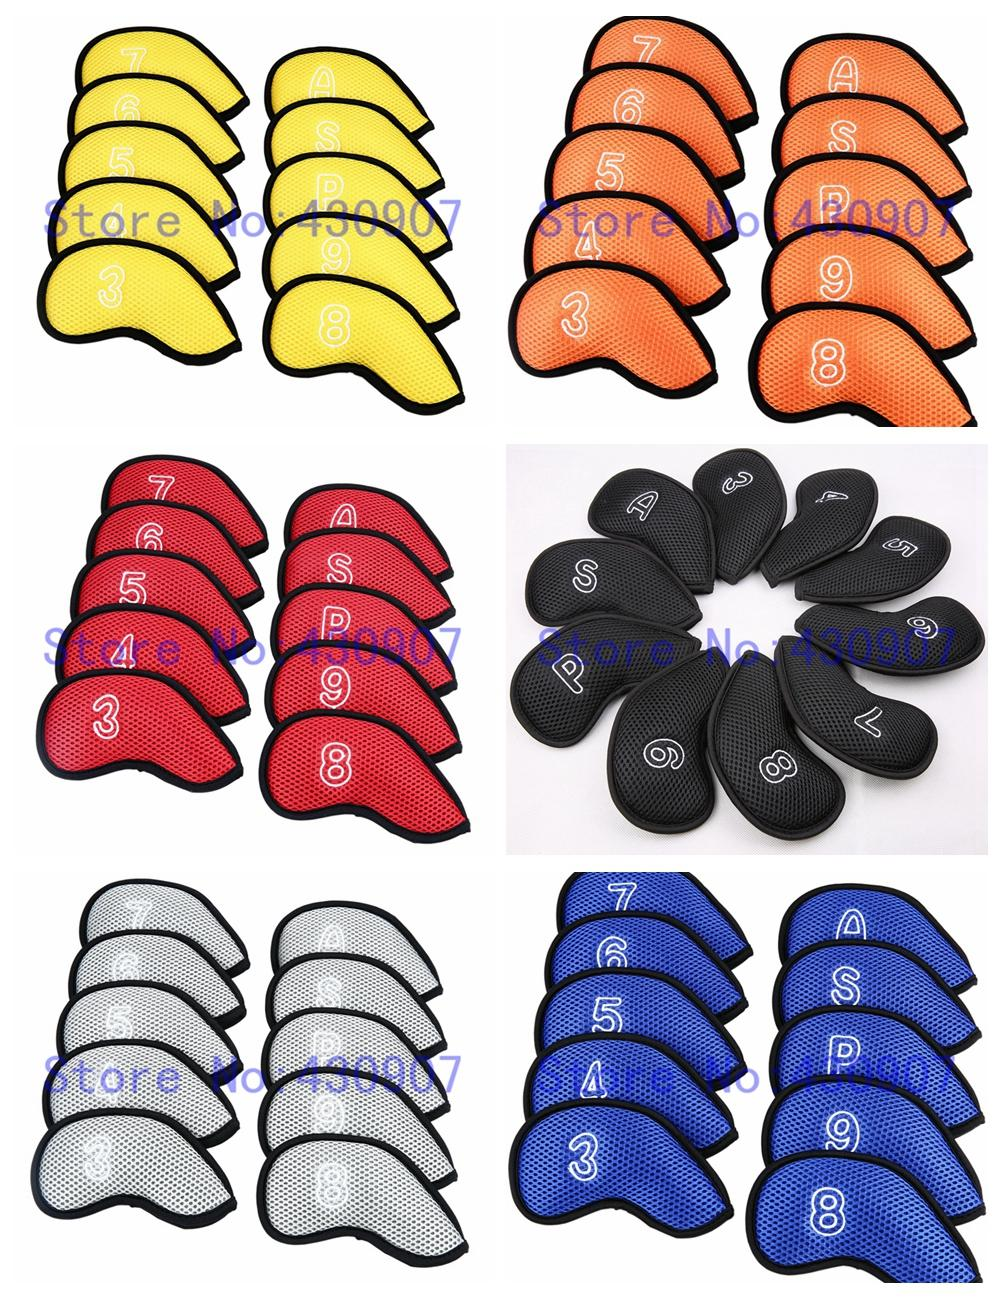 10pcs golf Iron cover Proctive Covers with Number Iron Club Head Cover 3-9 P A S